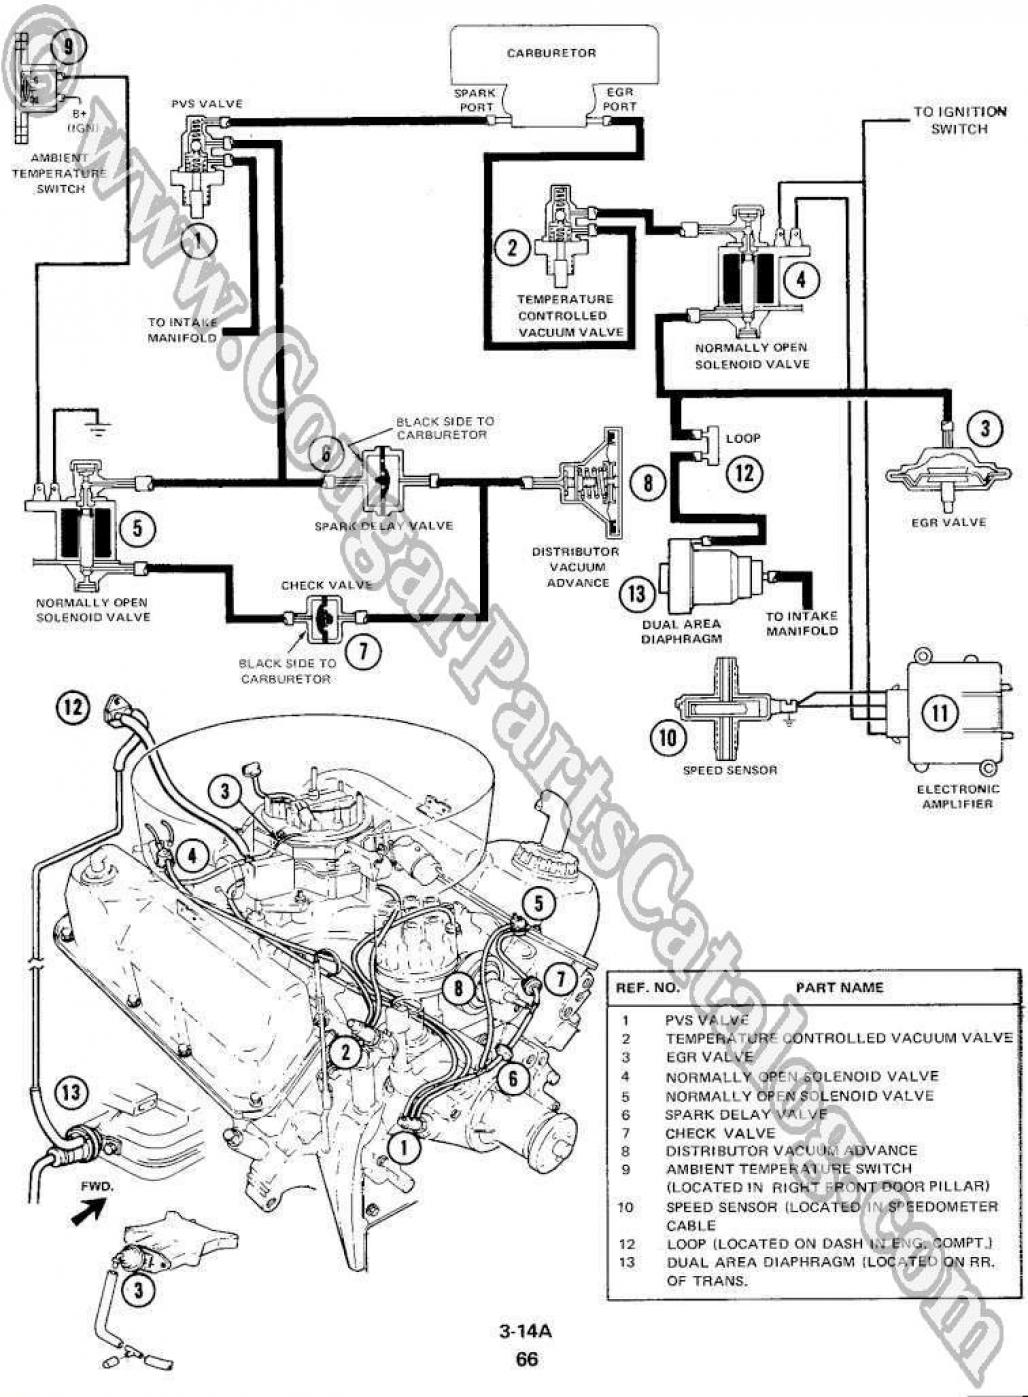 1973 Ford Mustang Radio Wiring Harness Diagram : 46 Wiring